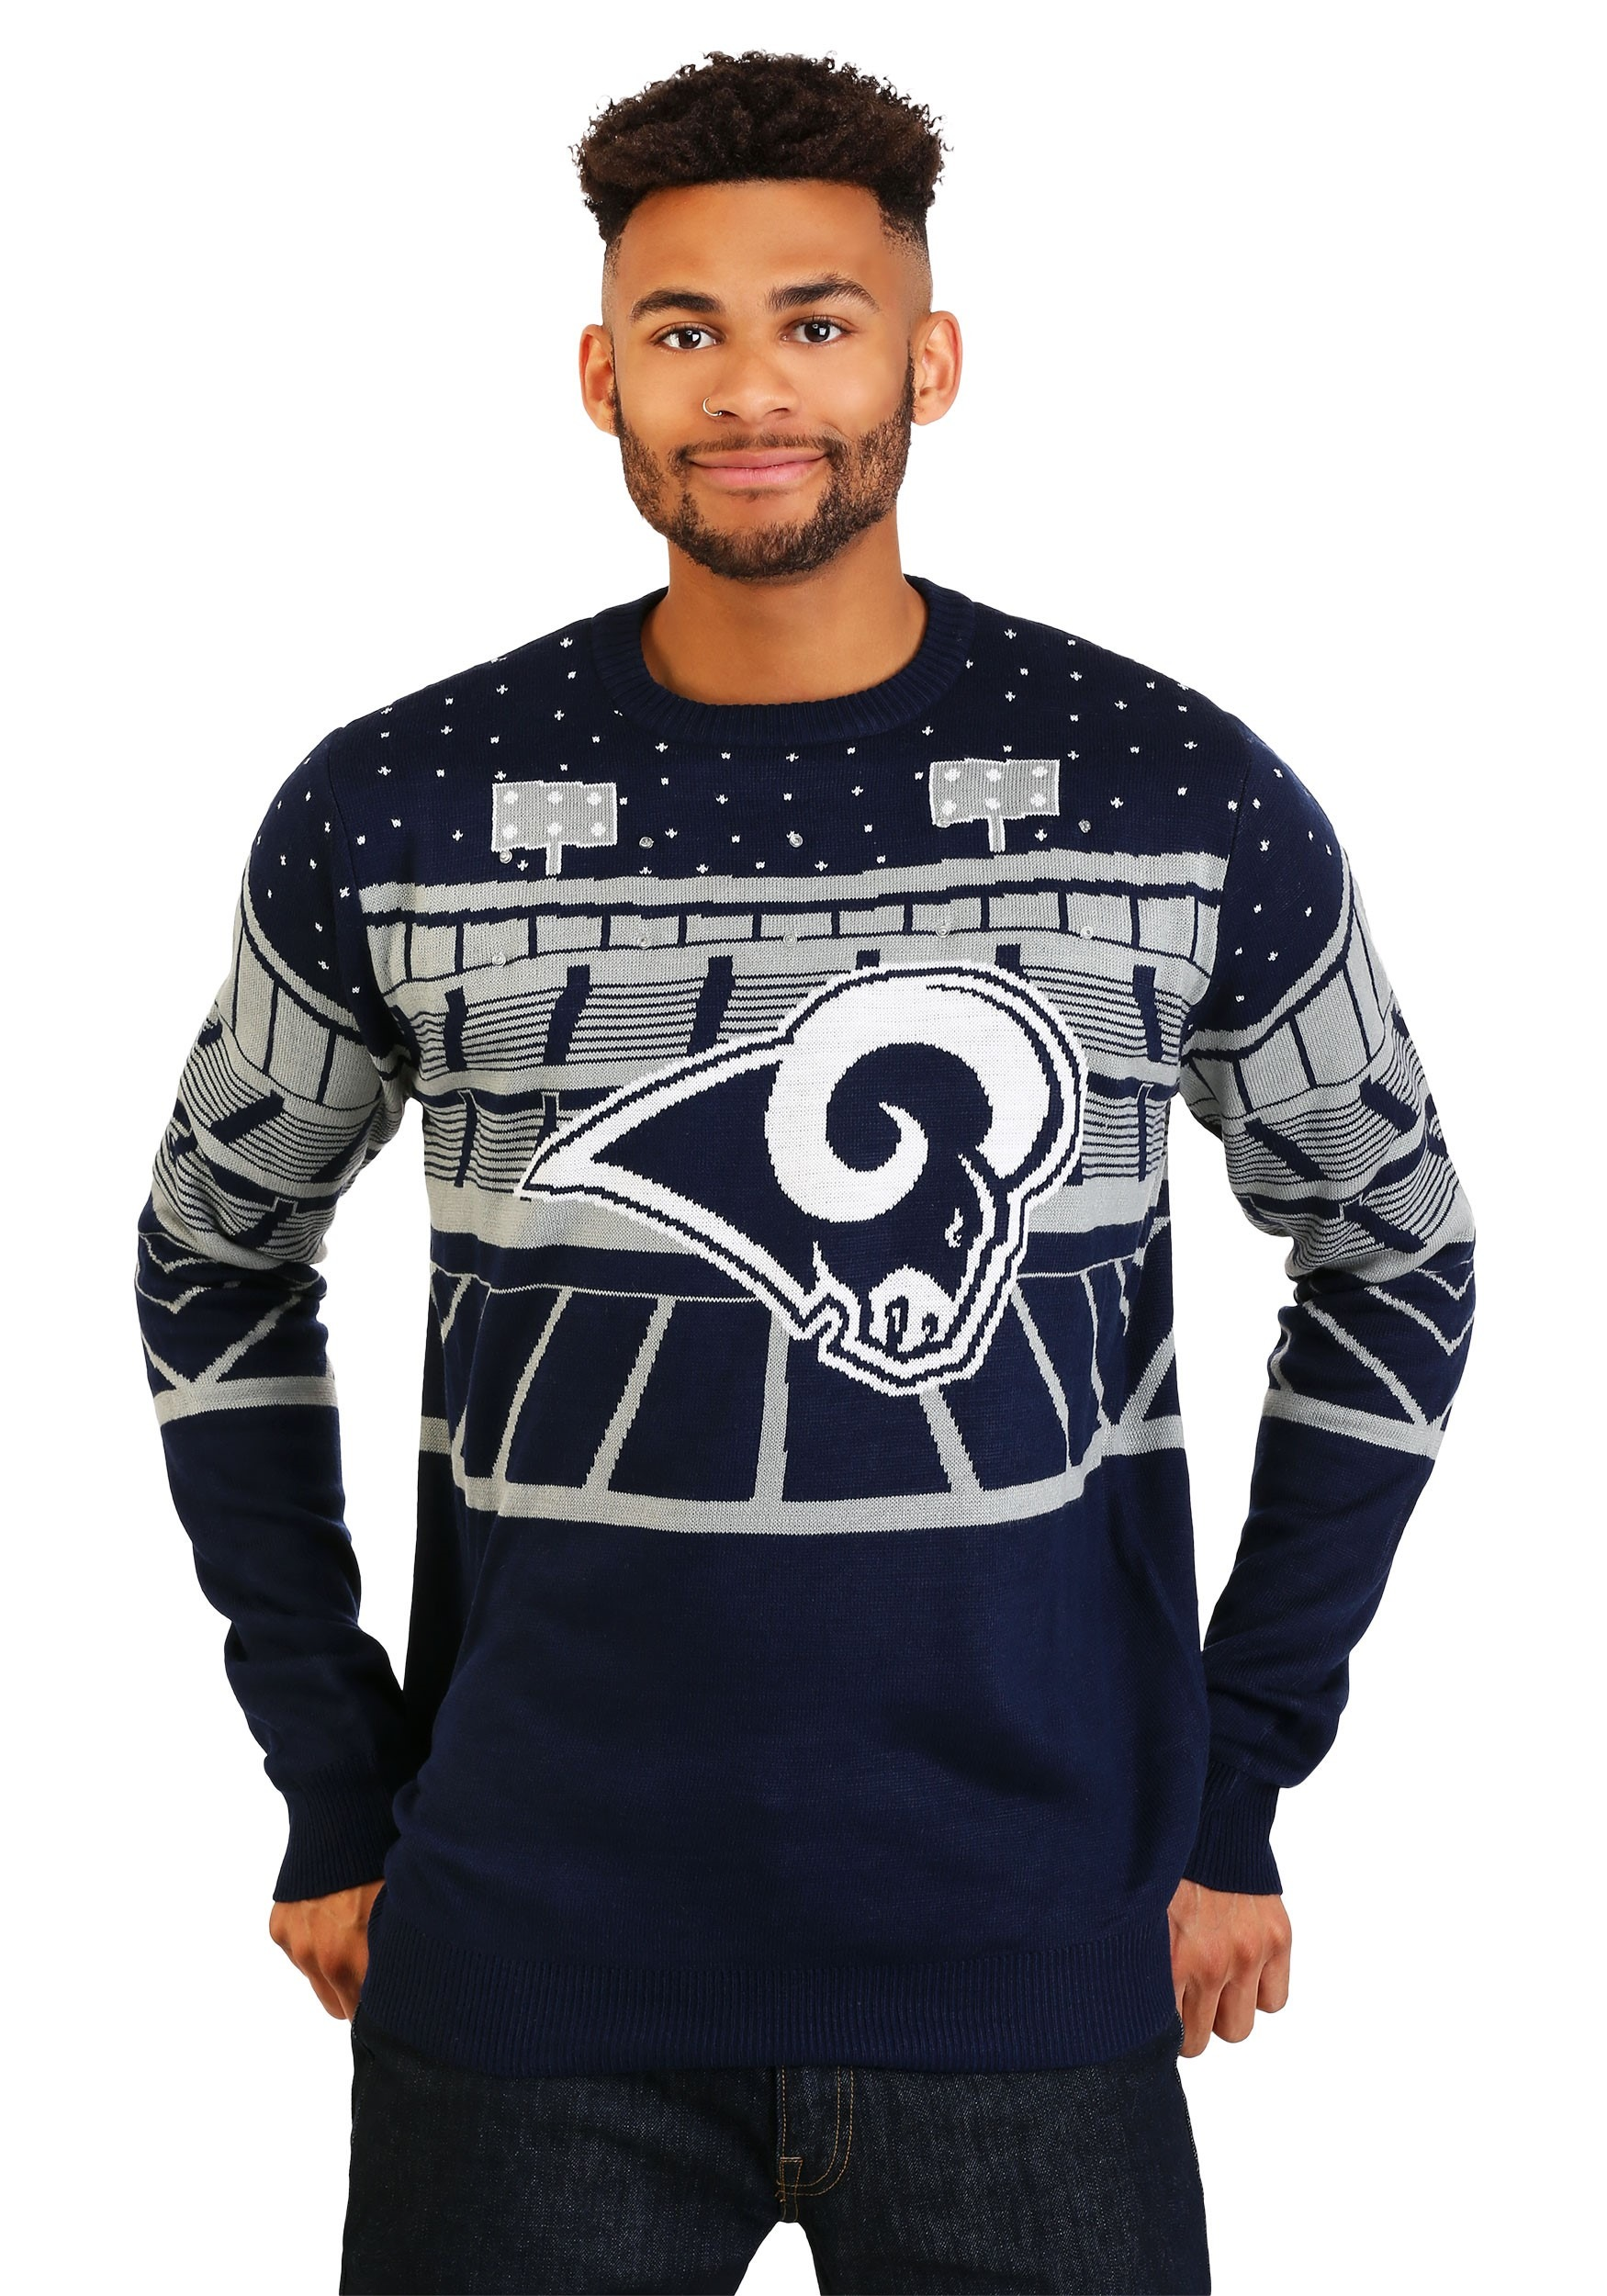 timeless design 7f954 0627d Los Angeles Rams Light Up Bluetooth Ugly Christmas Sweater